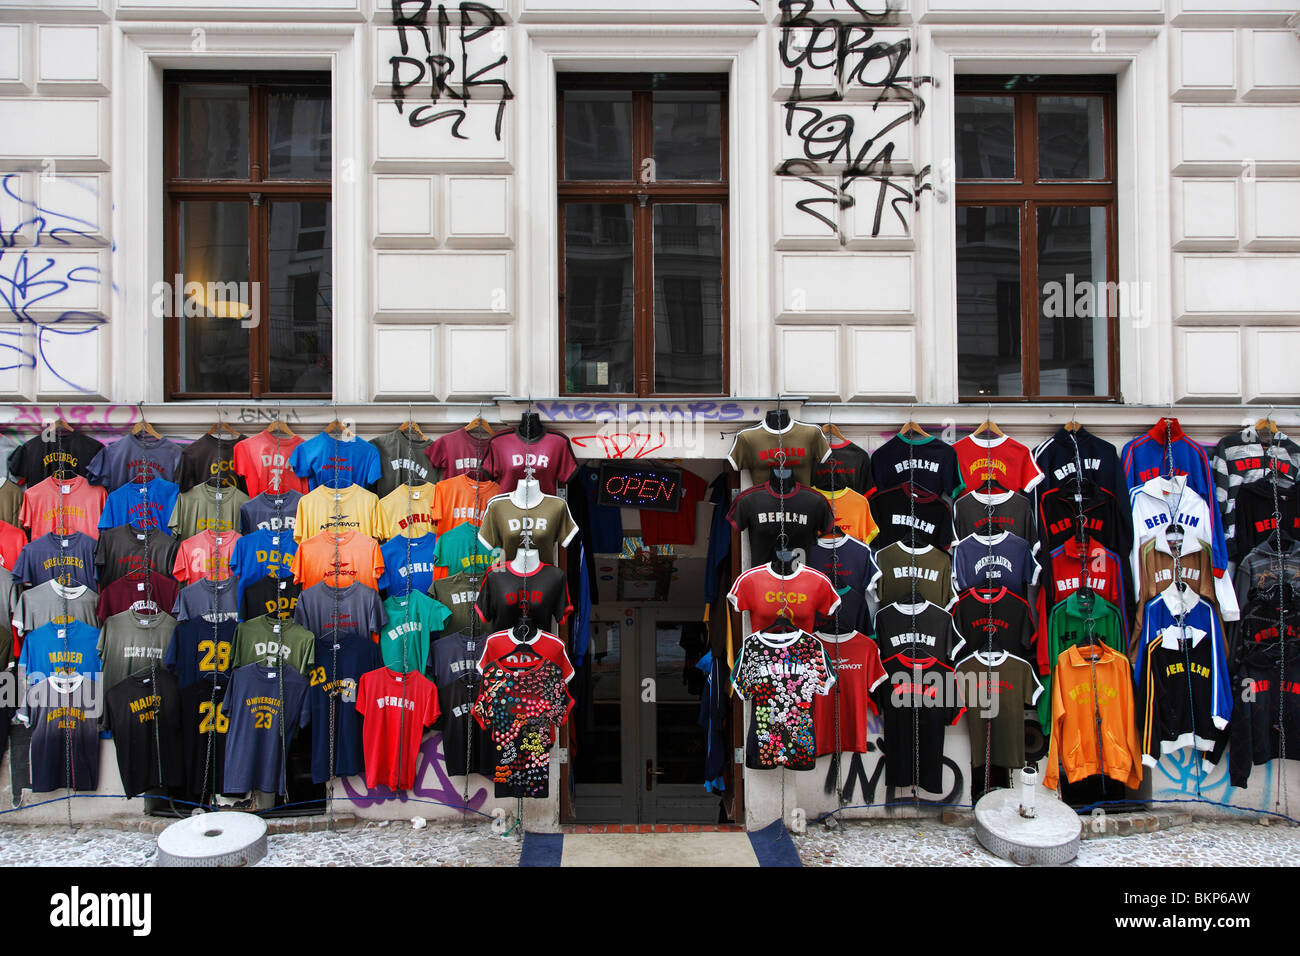 Berlin T-Shirt store with DDR shirts - Stock Image